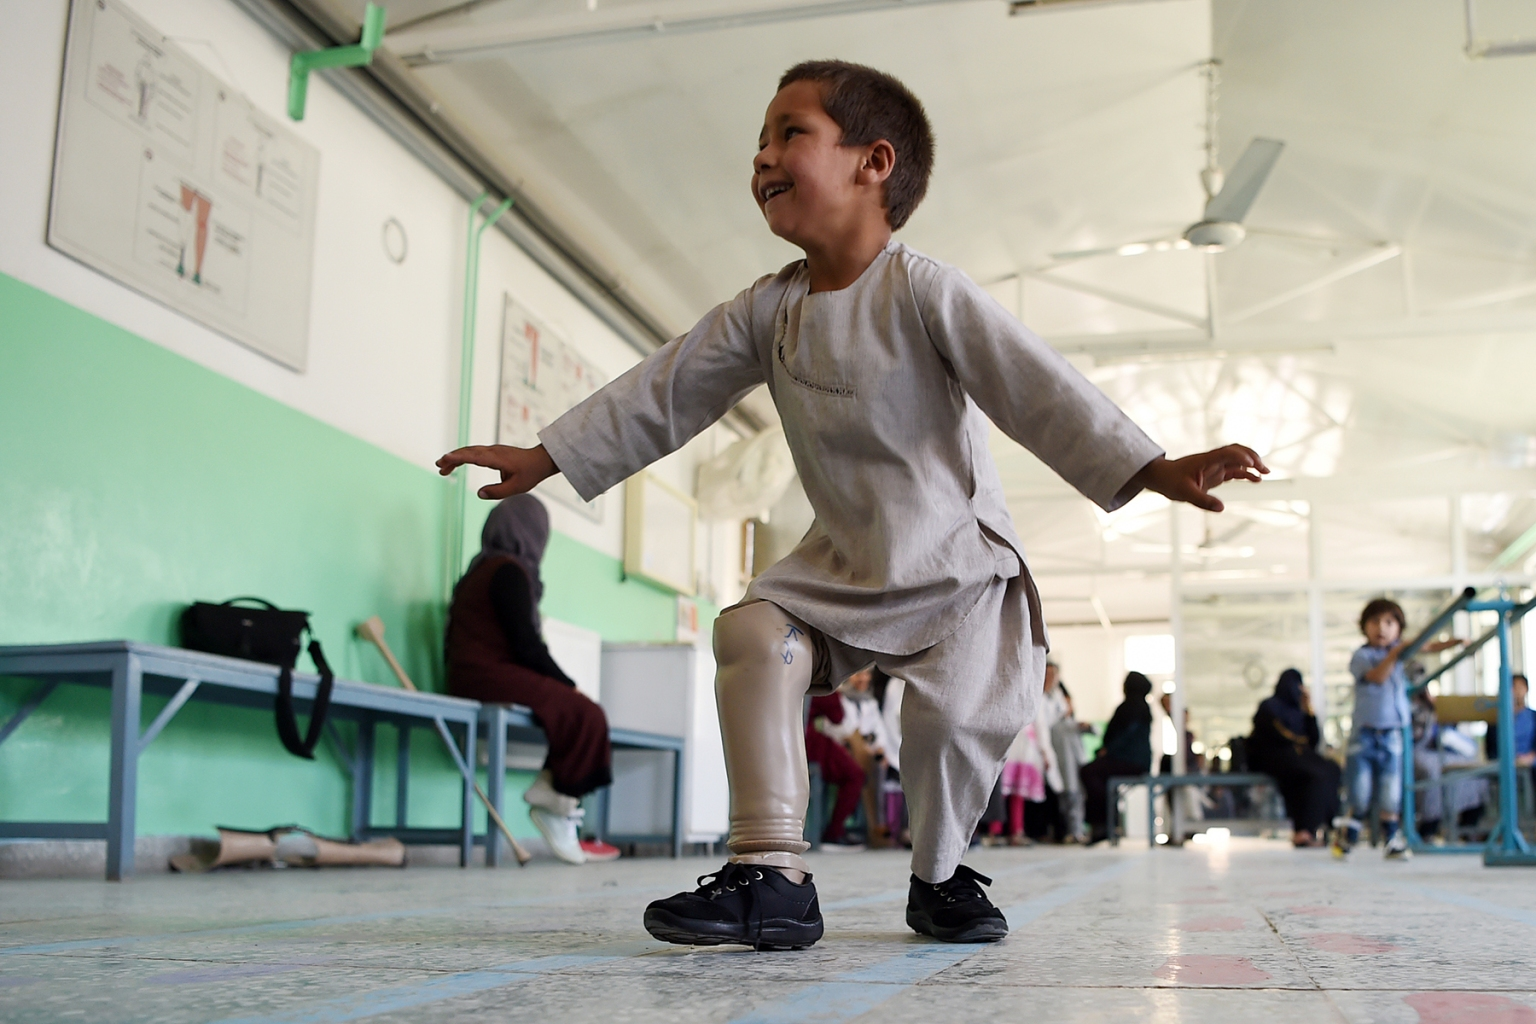 Ahmad Sayed Rahman, a 5-year-old Afghan boy who lost his right leg when he was hit by a bullet in the crossfire of a battle, dances with his prosthetic leg at the International Committee of the Red Cross hospital for war victims and the disabled in Kabul on May 7. WAKIL KOHSAR/AFP/Getty Images